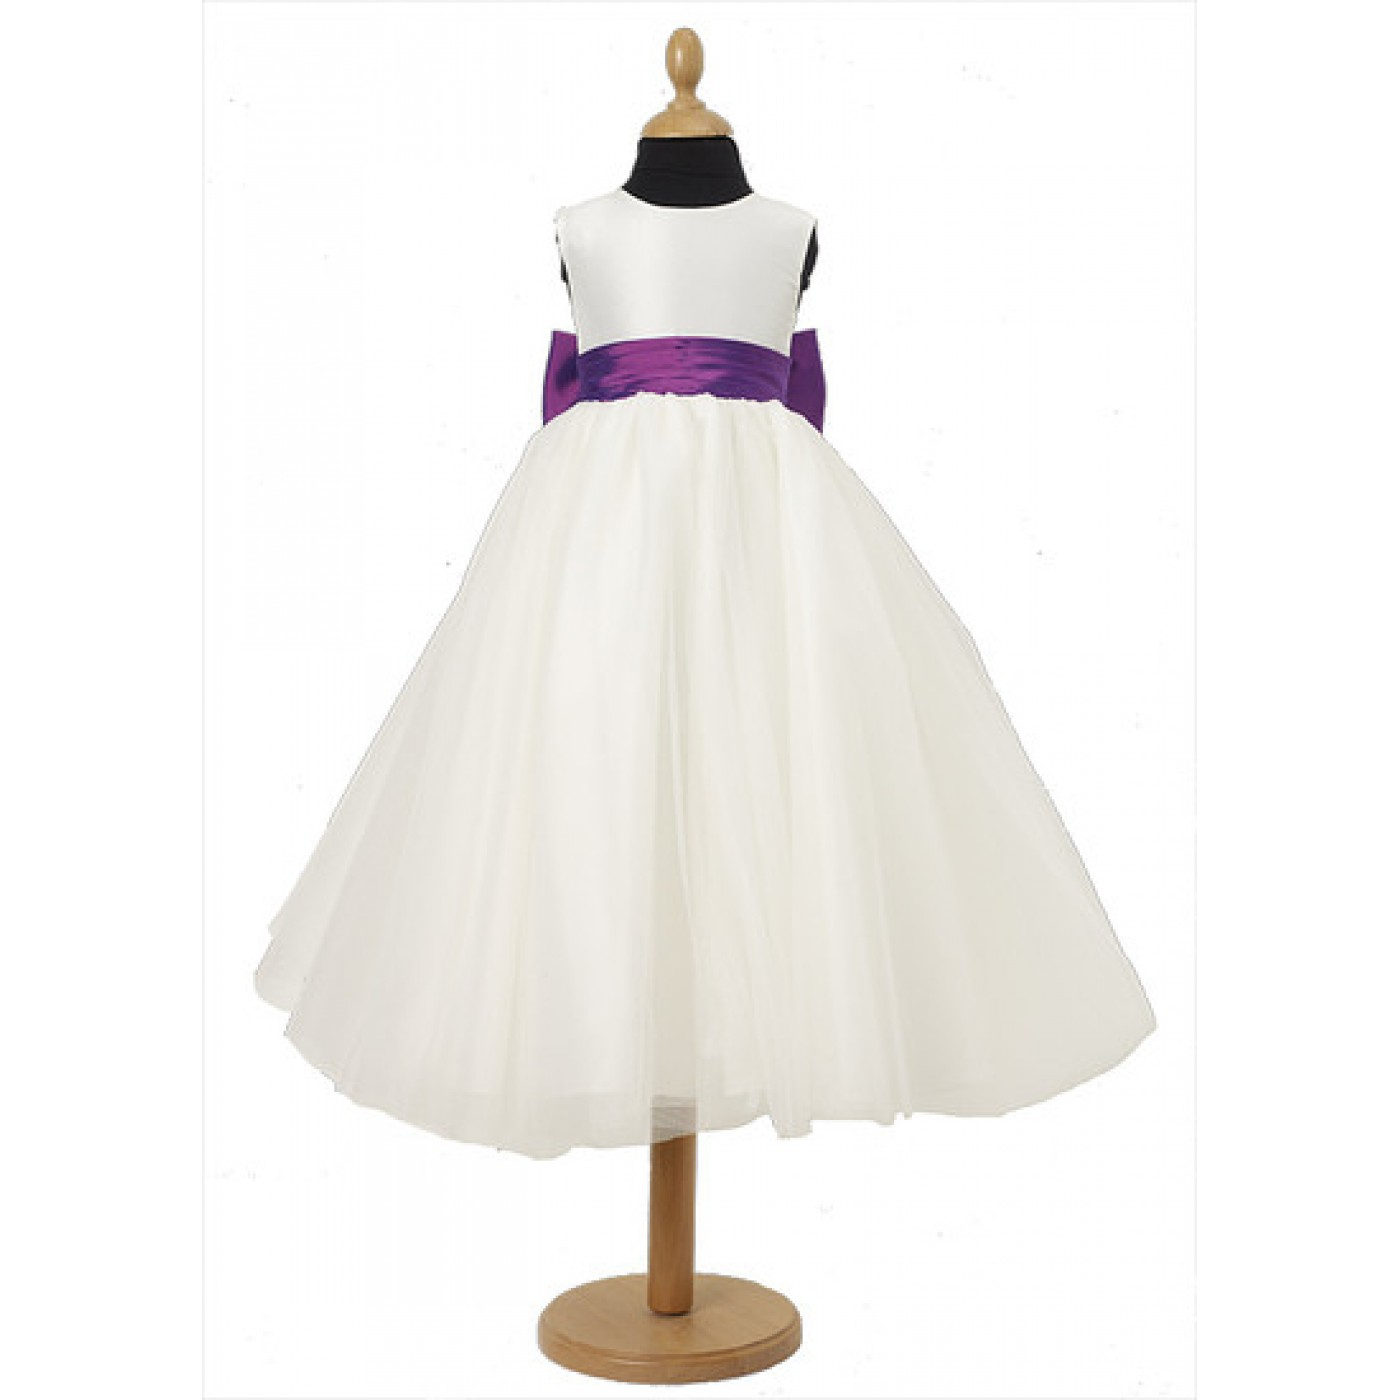 Linzi jay fk052 flower girl dress the dressy dress shop linzi jay fk052 flower girl dress ombrellifo Image collections